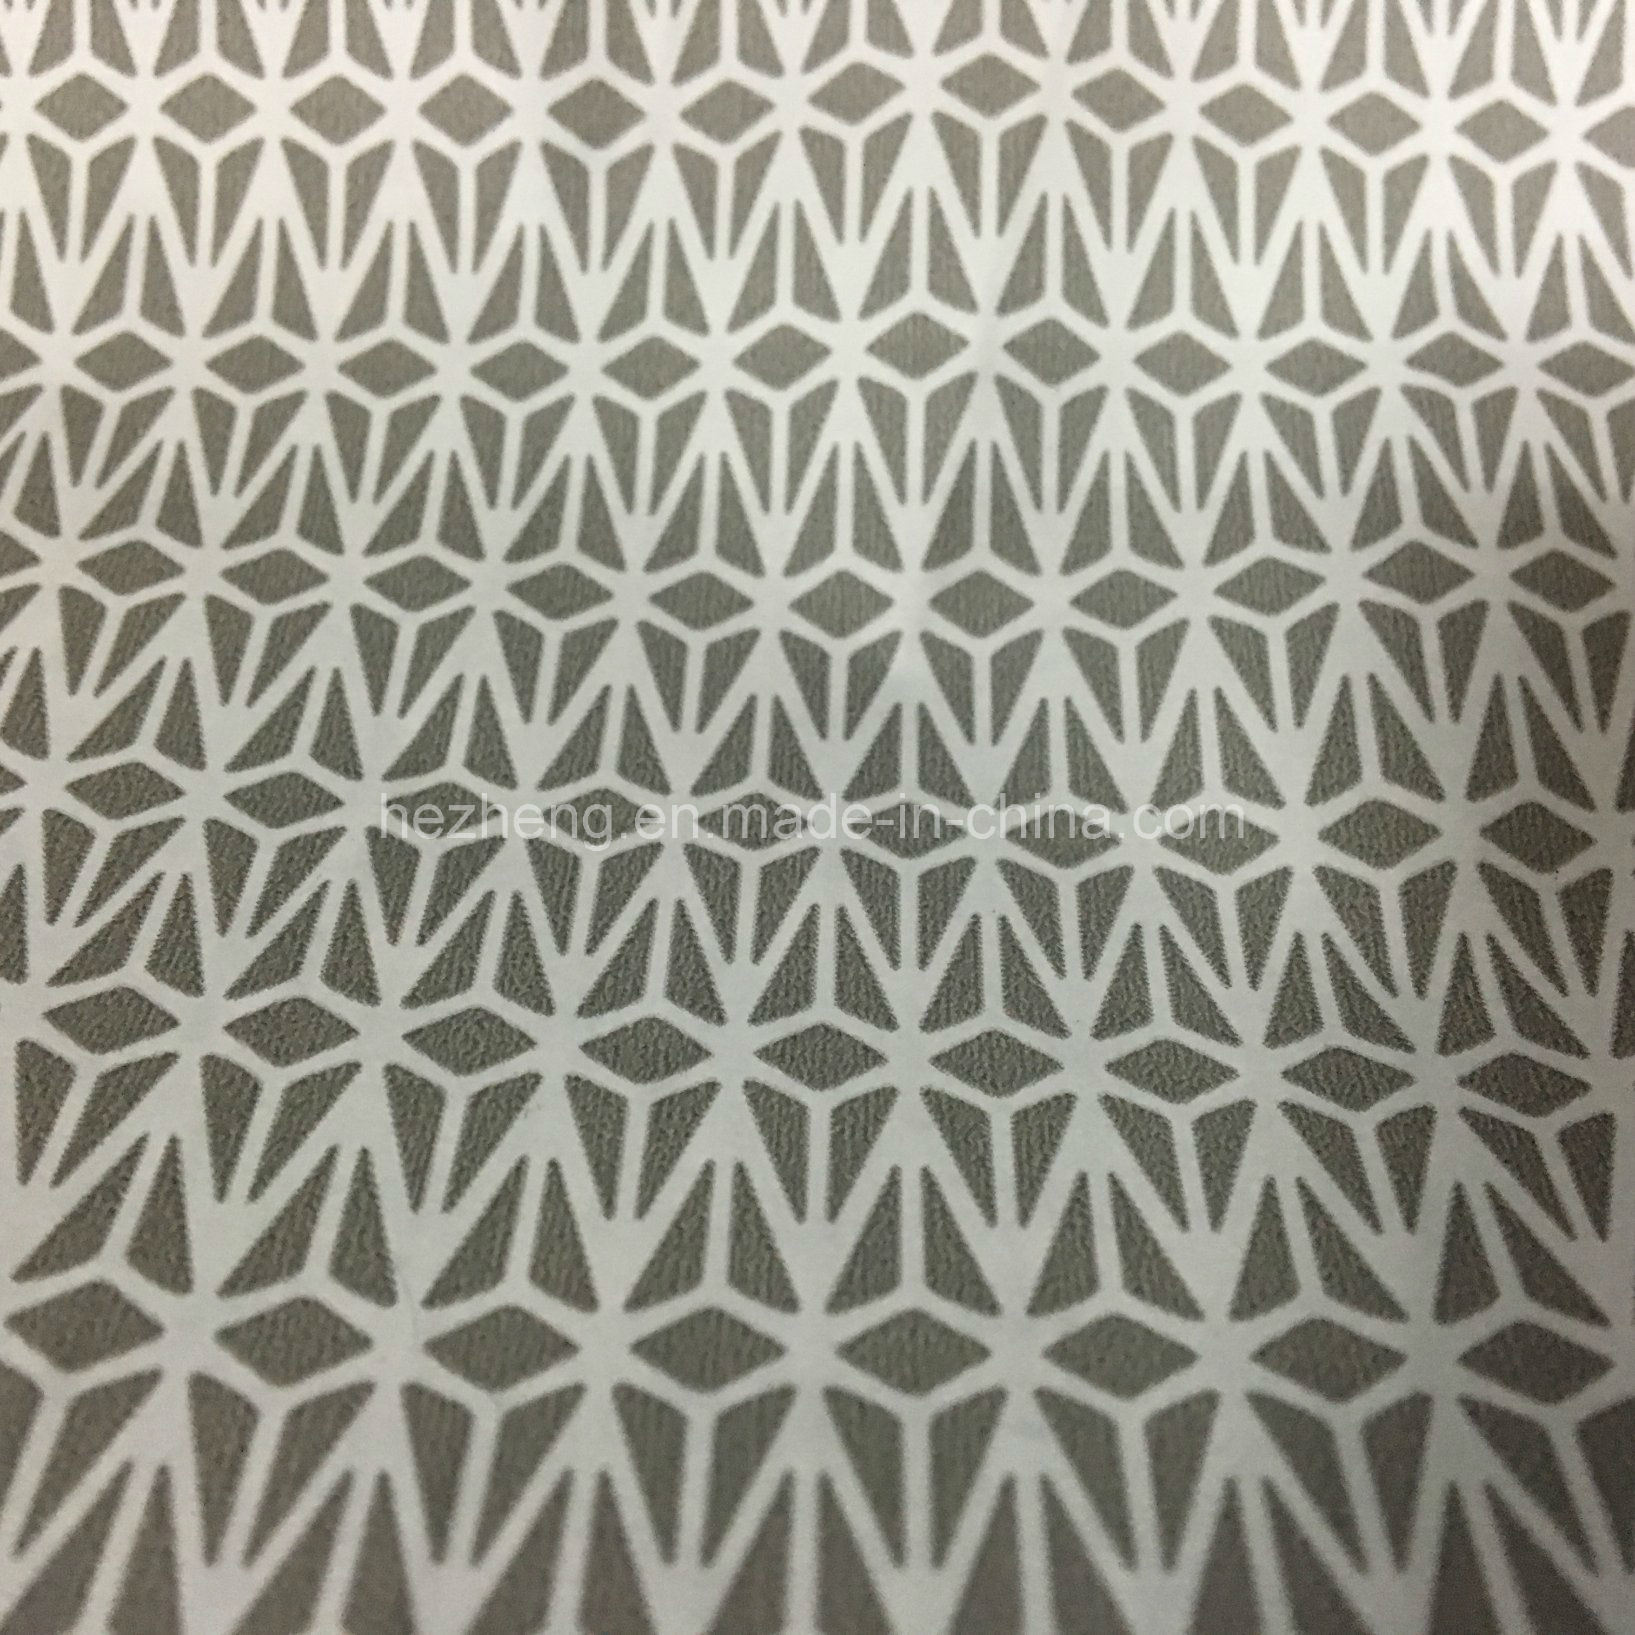 Hz4645 Printed PU Coated Nylon Fabric for Active Wear